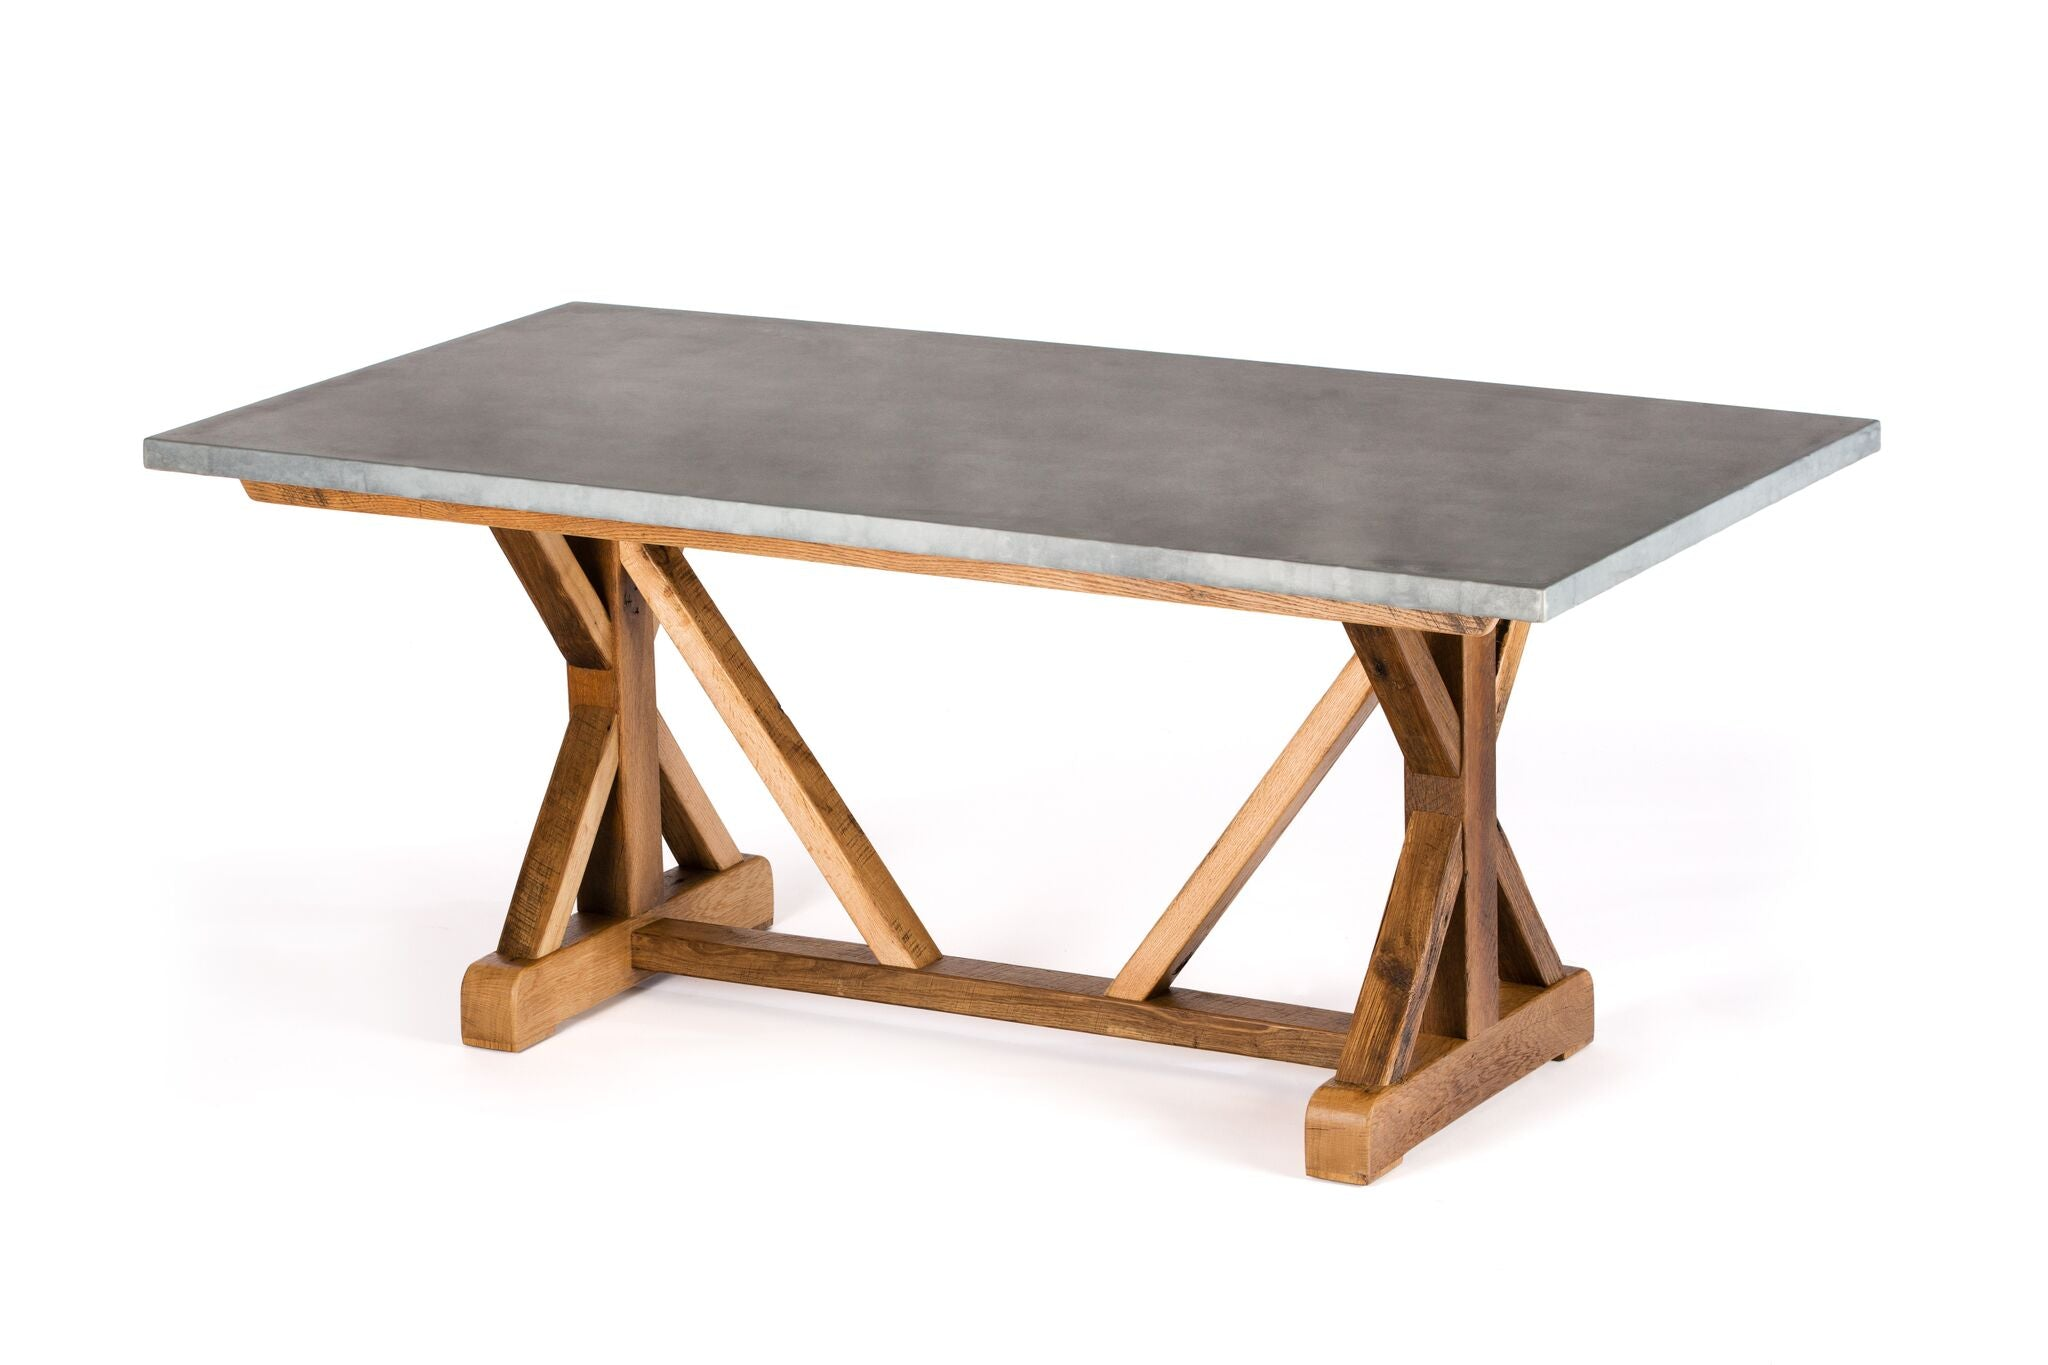 "Zinc Rectangular Table | French Trestle Table | CLASSIC | Black on Poplar | CUSTOM SIZE 60""L 37""W 30""H 